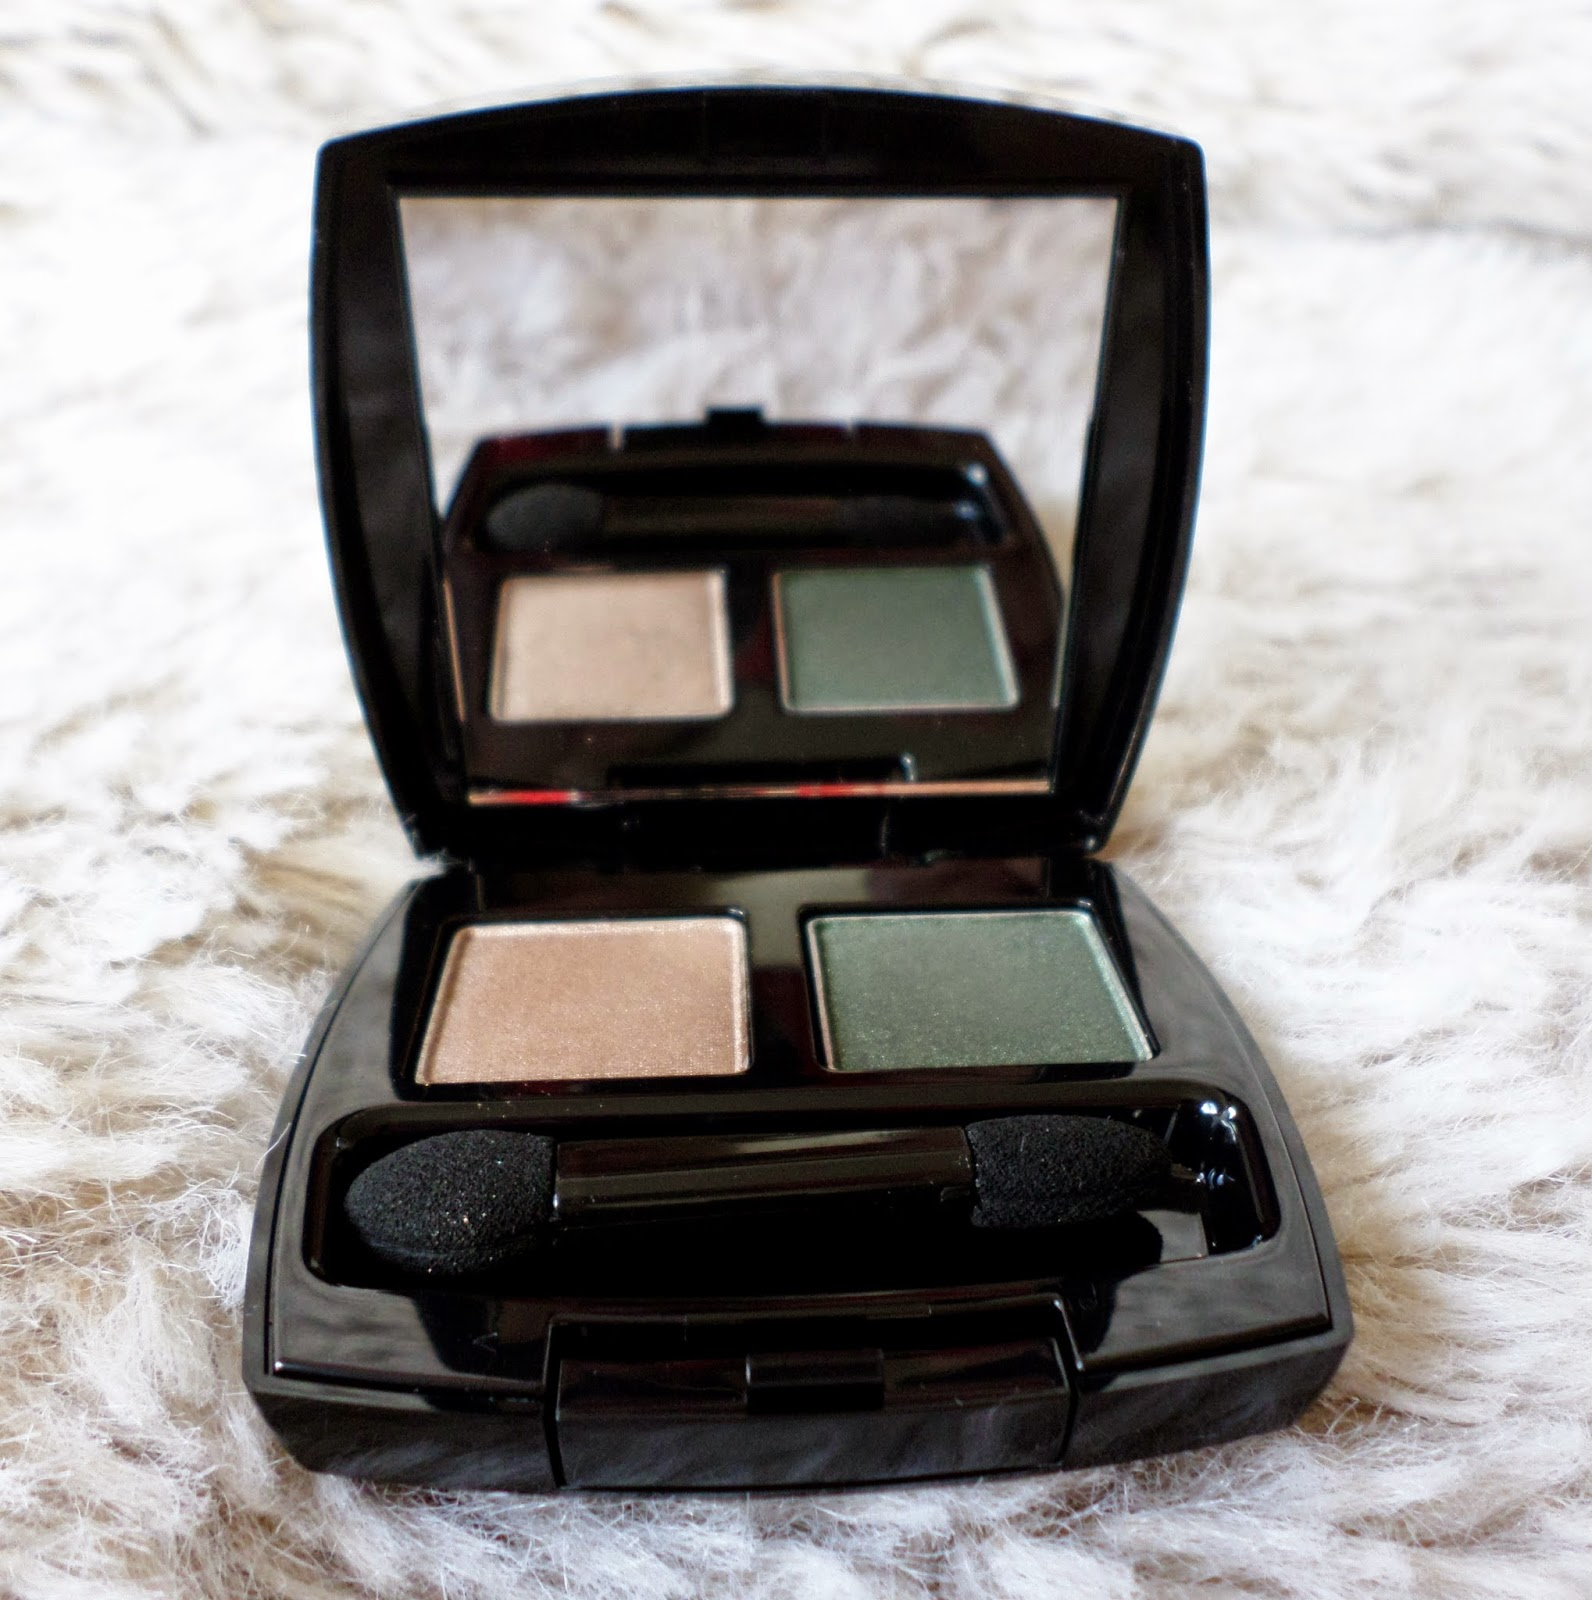 Avon True Colour Eyeshadow Duo in the shade Enchanted Forest